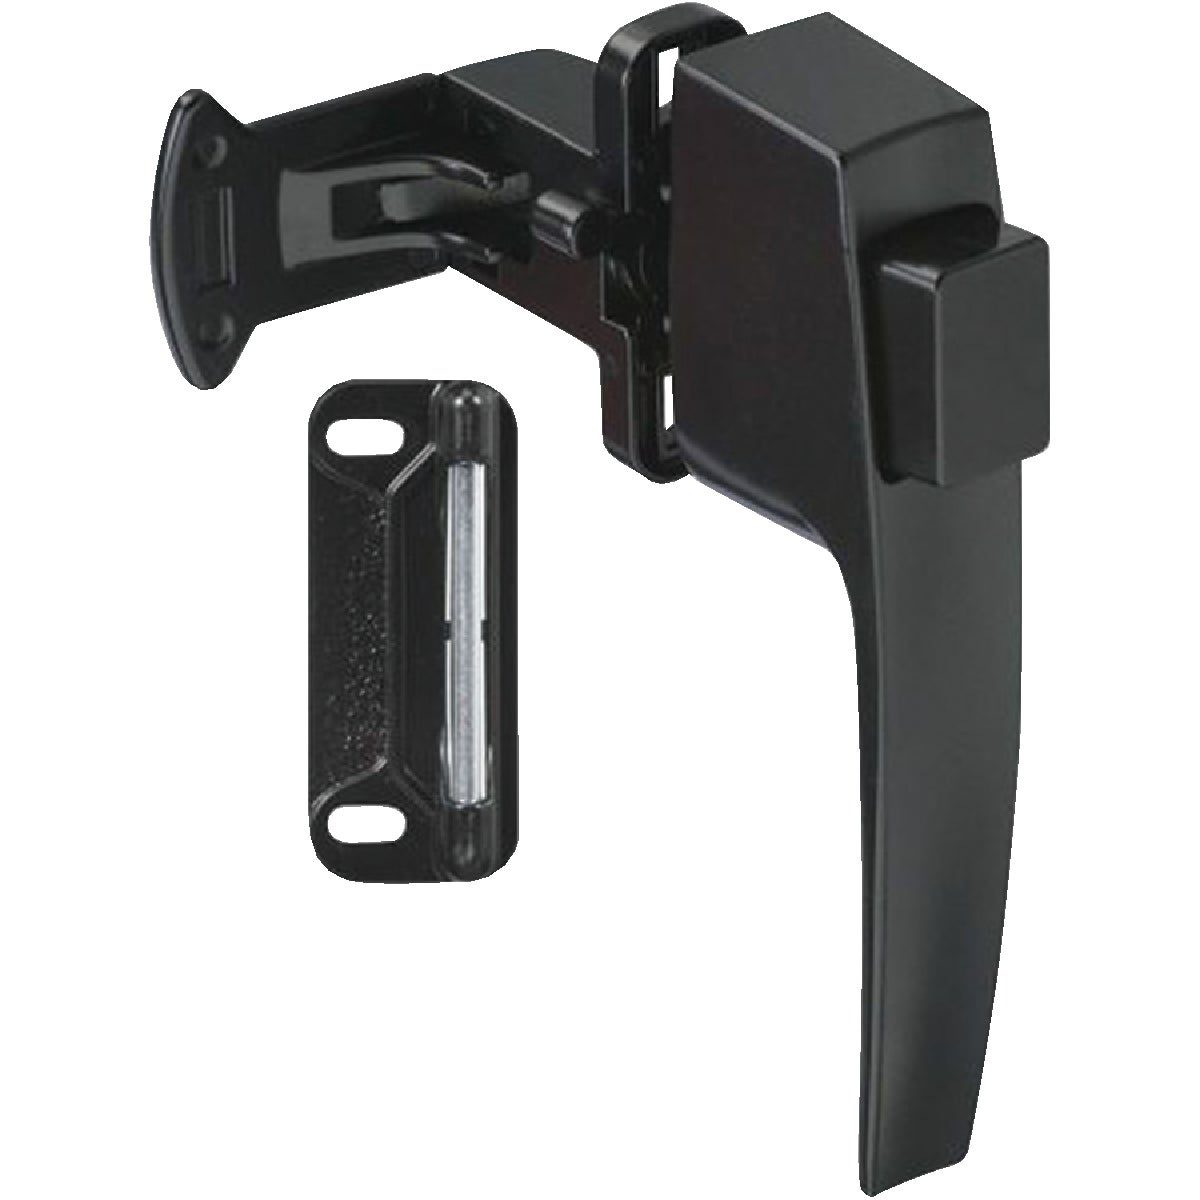 BK STRM DR PUSHBTN LATCH - N178392 by National Mfg Co